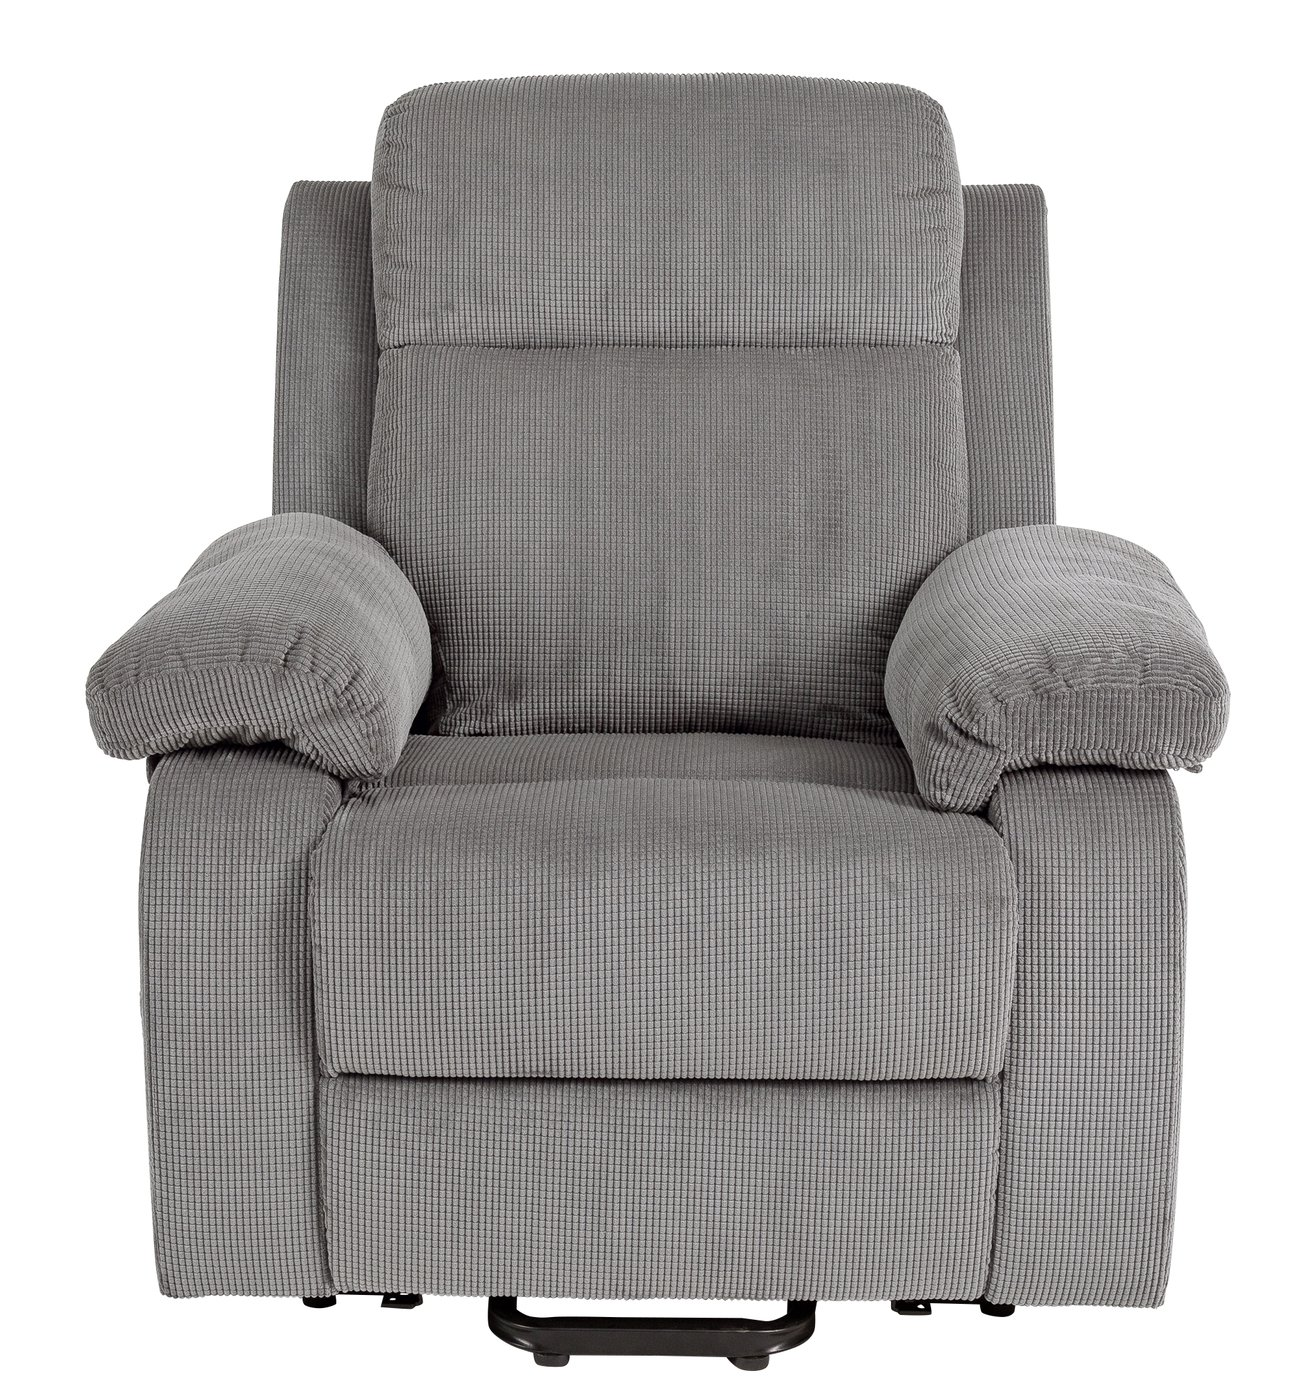 Argos Home Power Riser Recliner Chair with Dual Motor